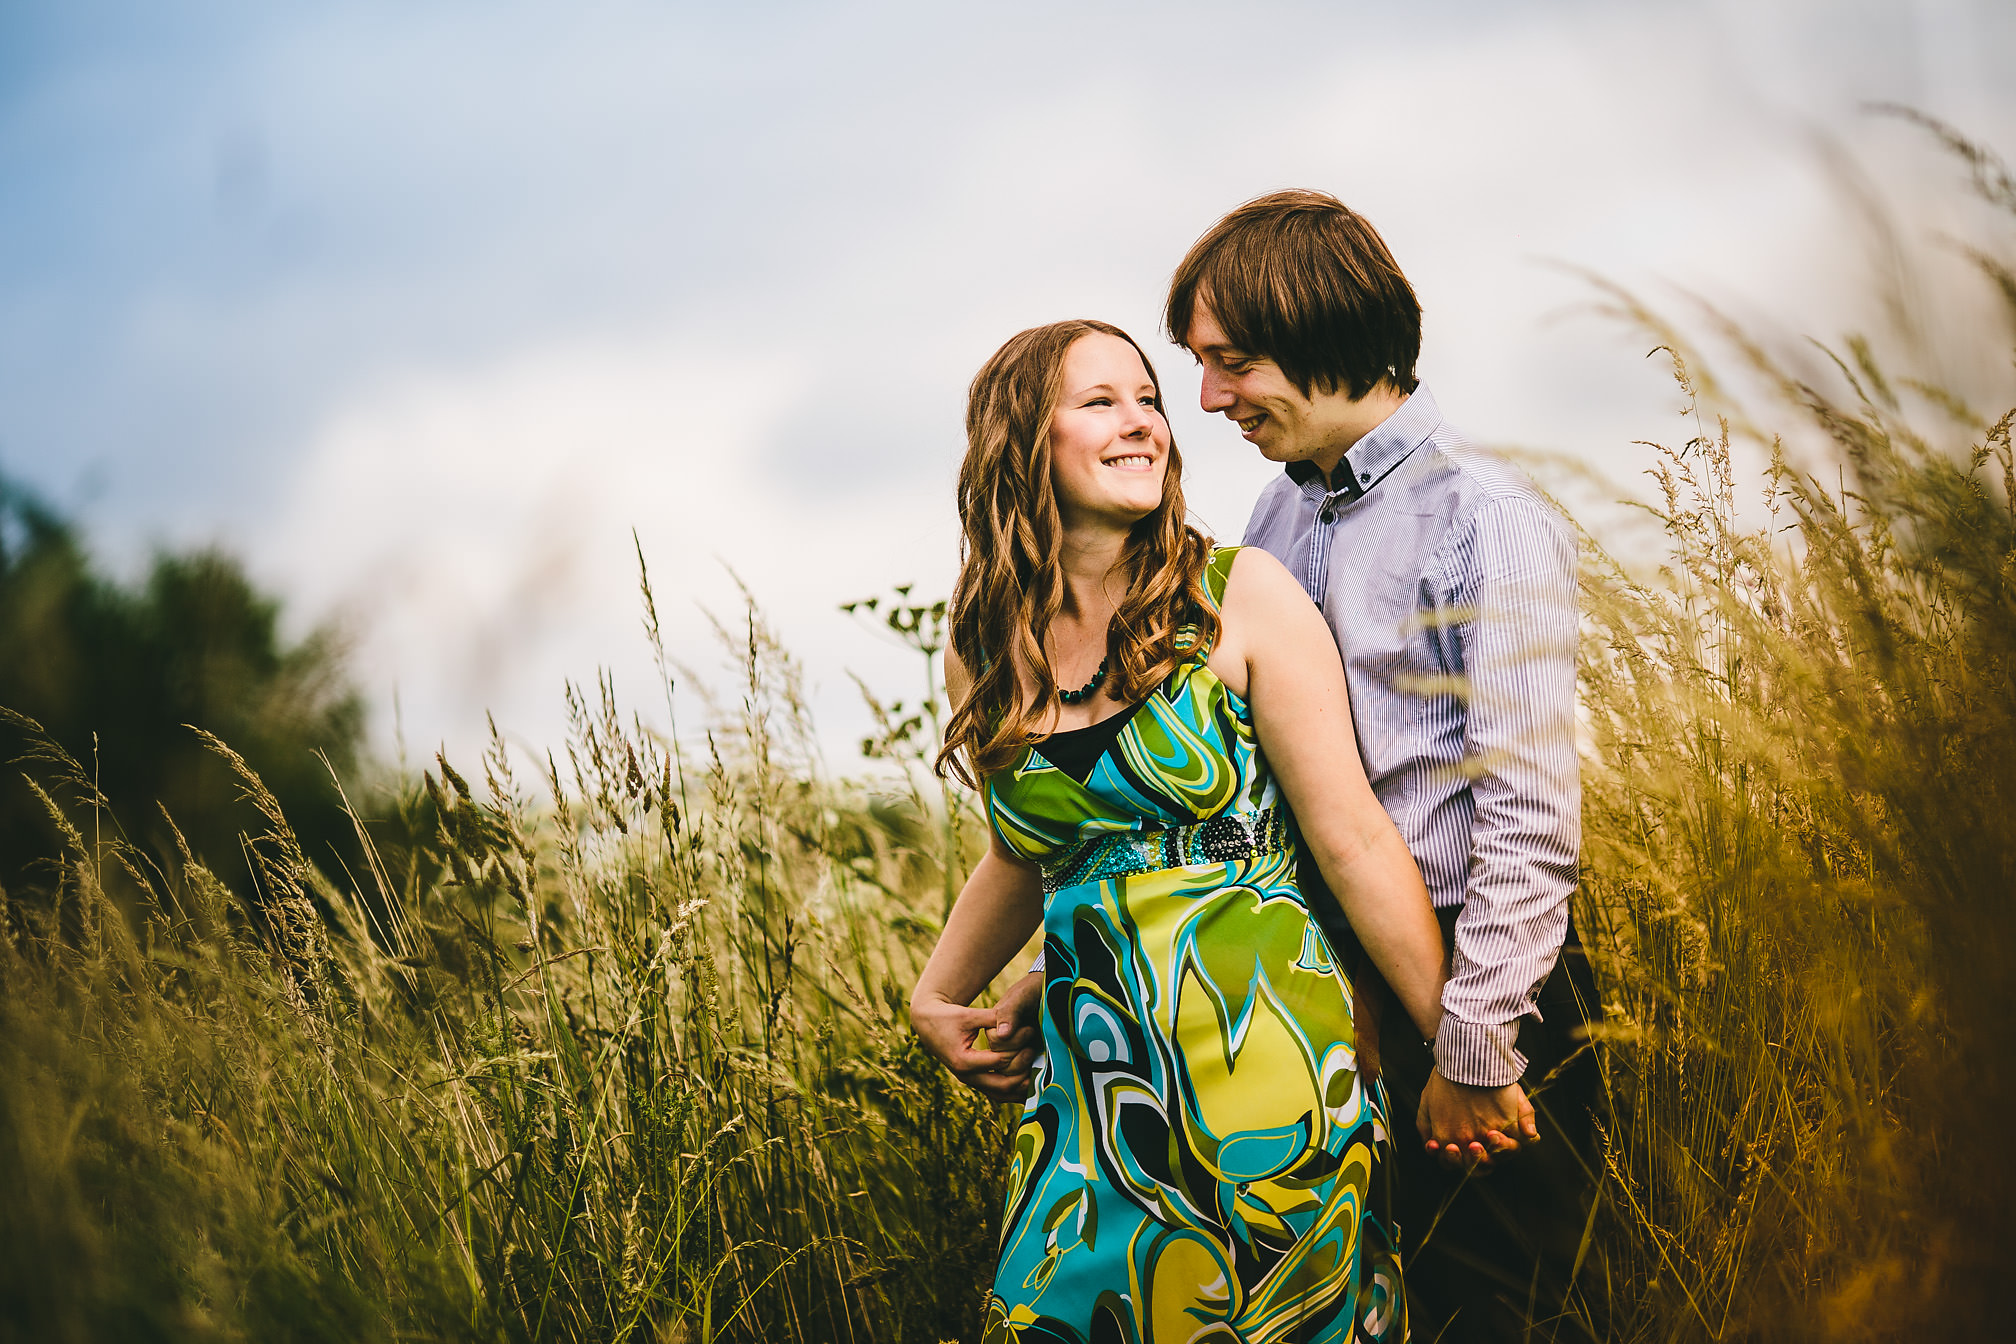 Pre-Wedding shoot at Delapre Park, Northamptonshire